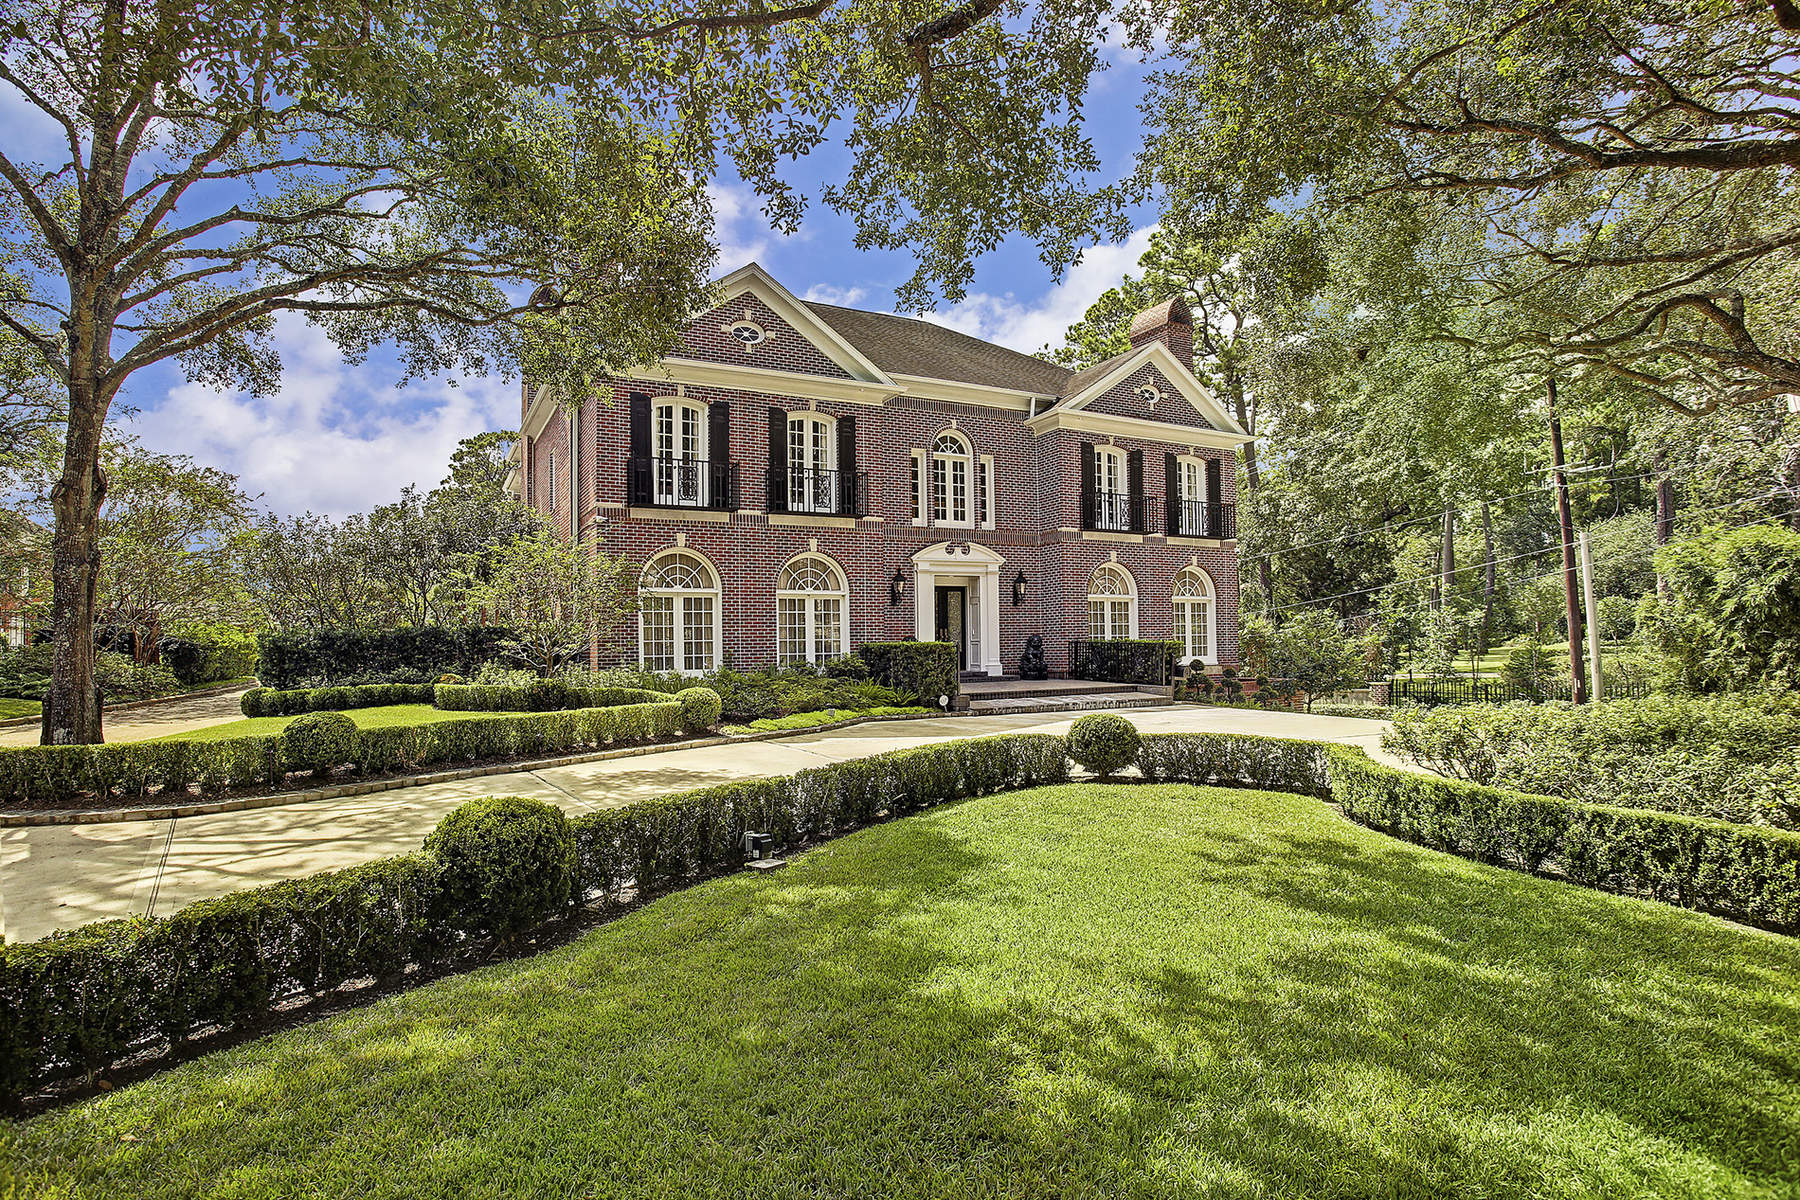 Villa per Vendita alle ore 3717 Willowick Road Houston, Texas, 77019 Stati Uniti